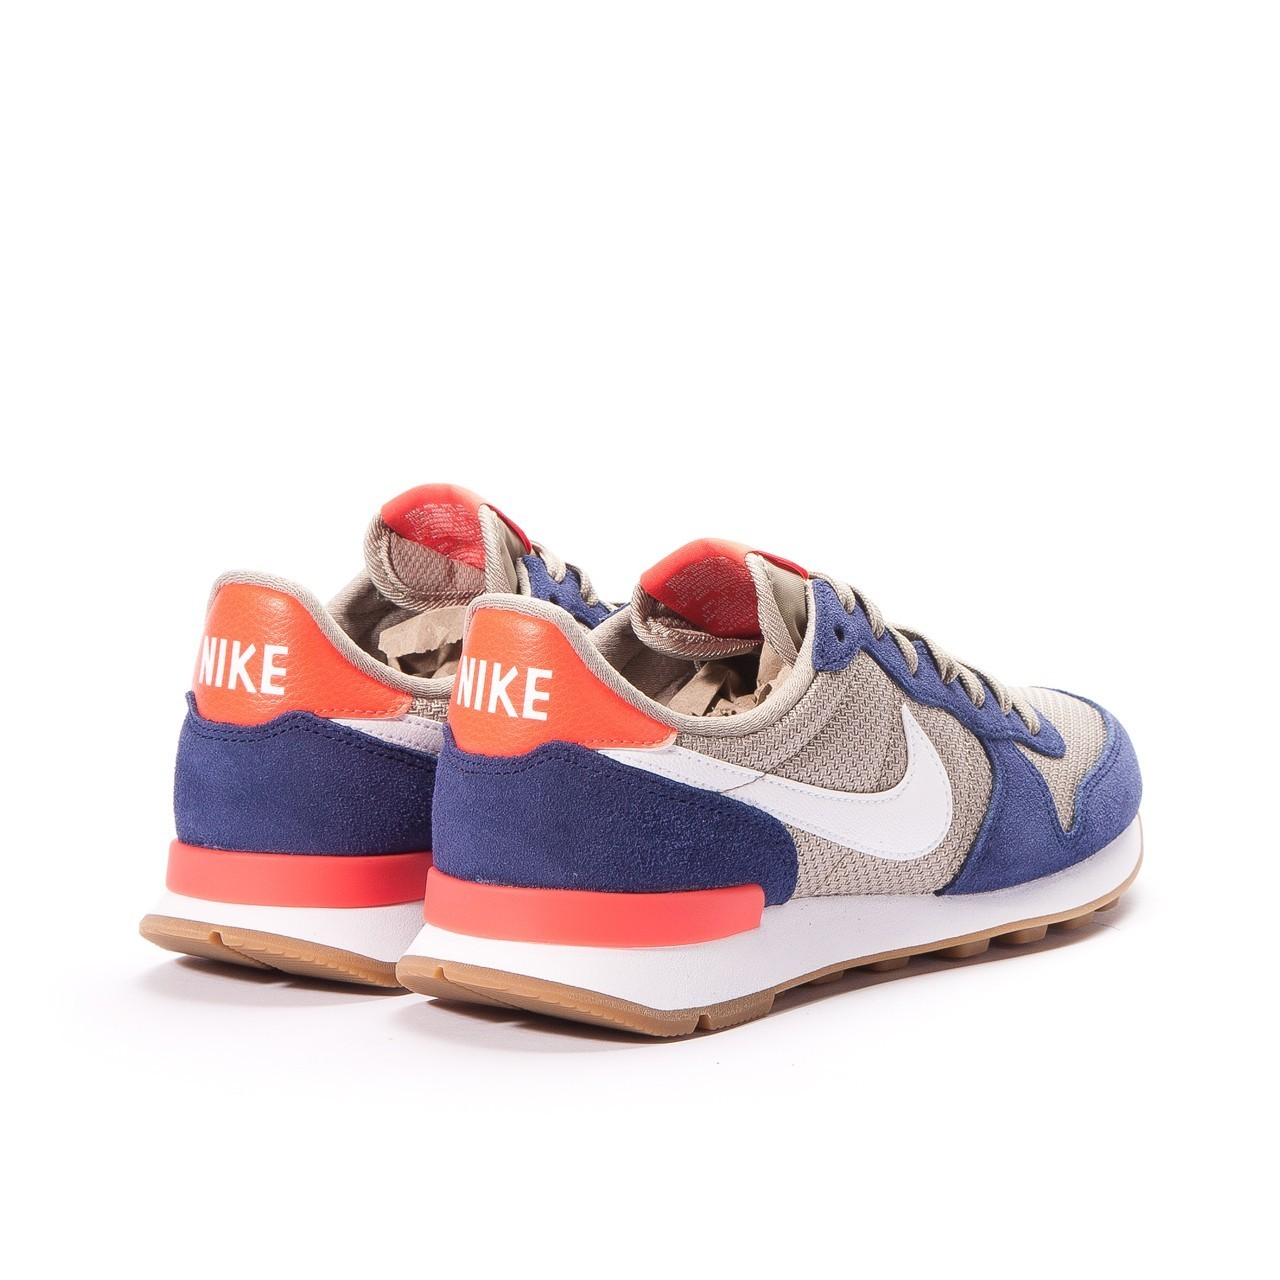 nike internationalist femme marron et or